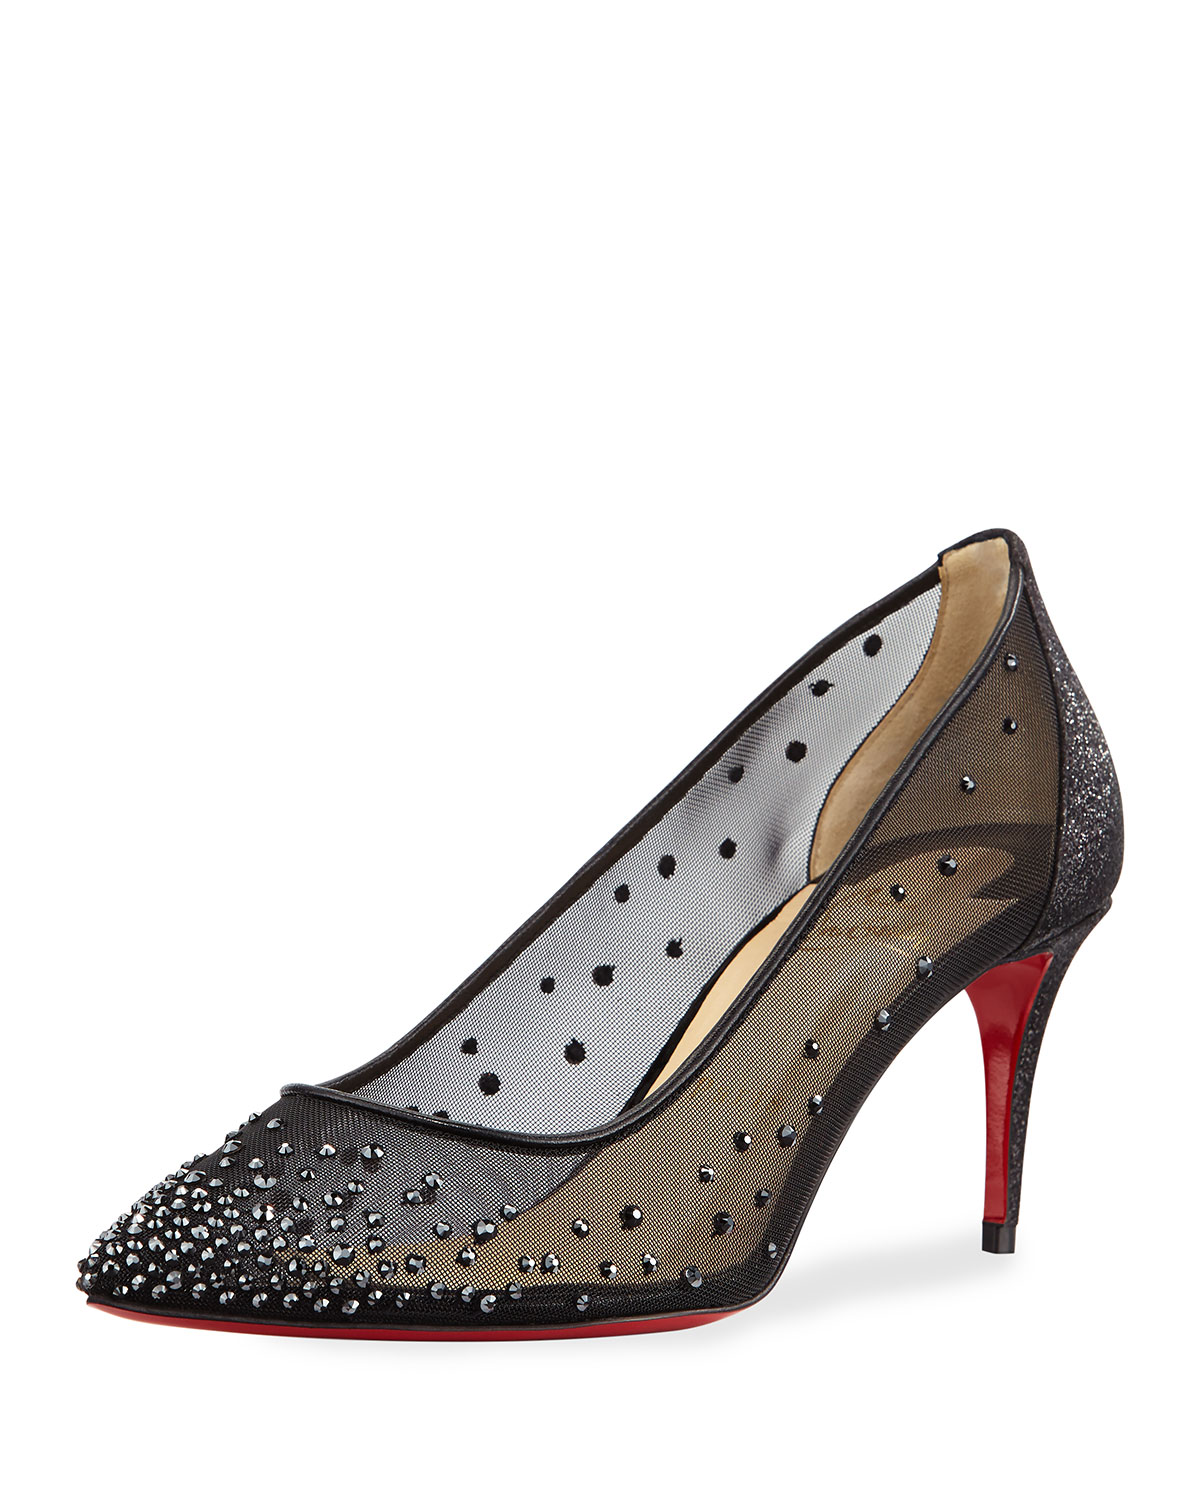 watch 5f075 0625c Christian Louboutin Follies Strass Mesh 70mm Red Sole Pump